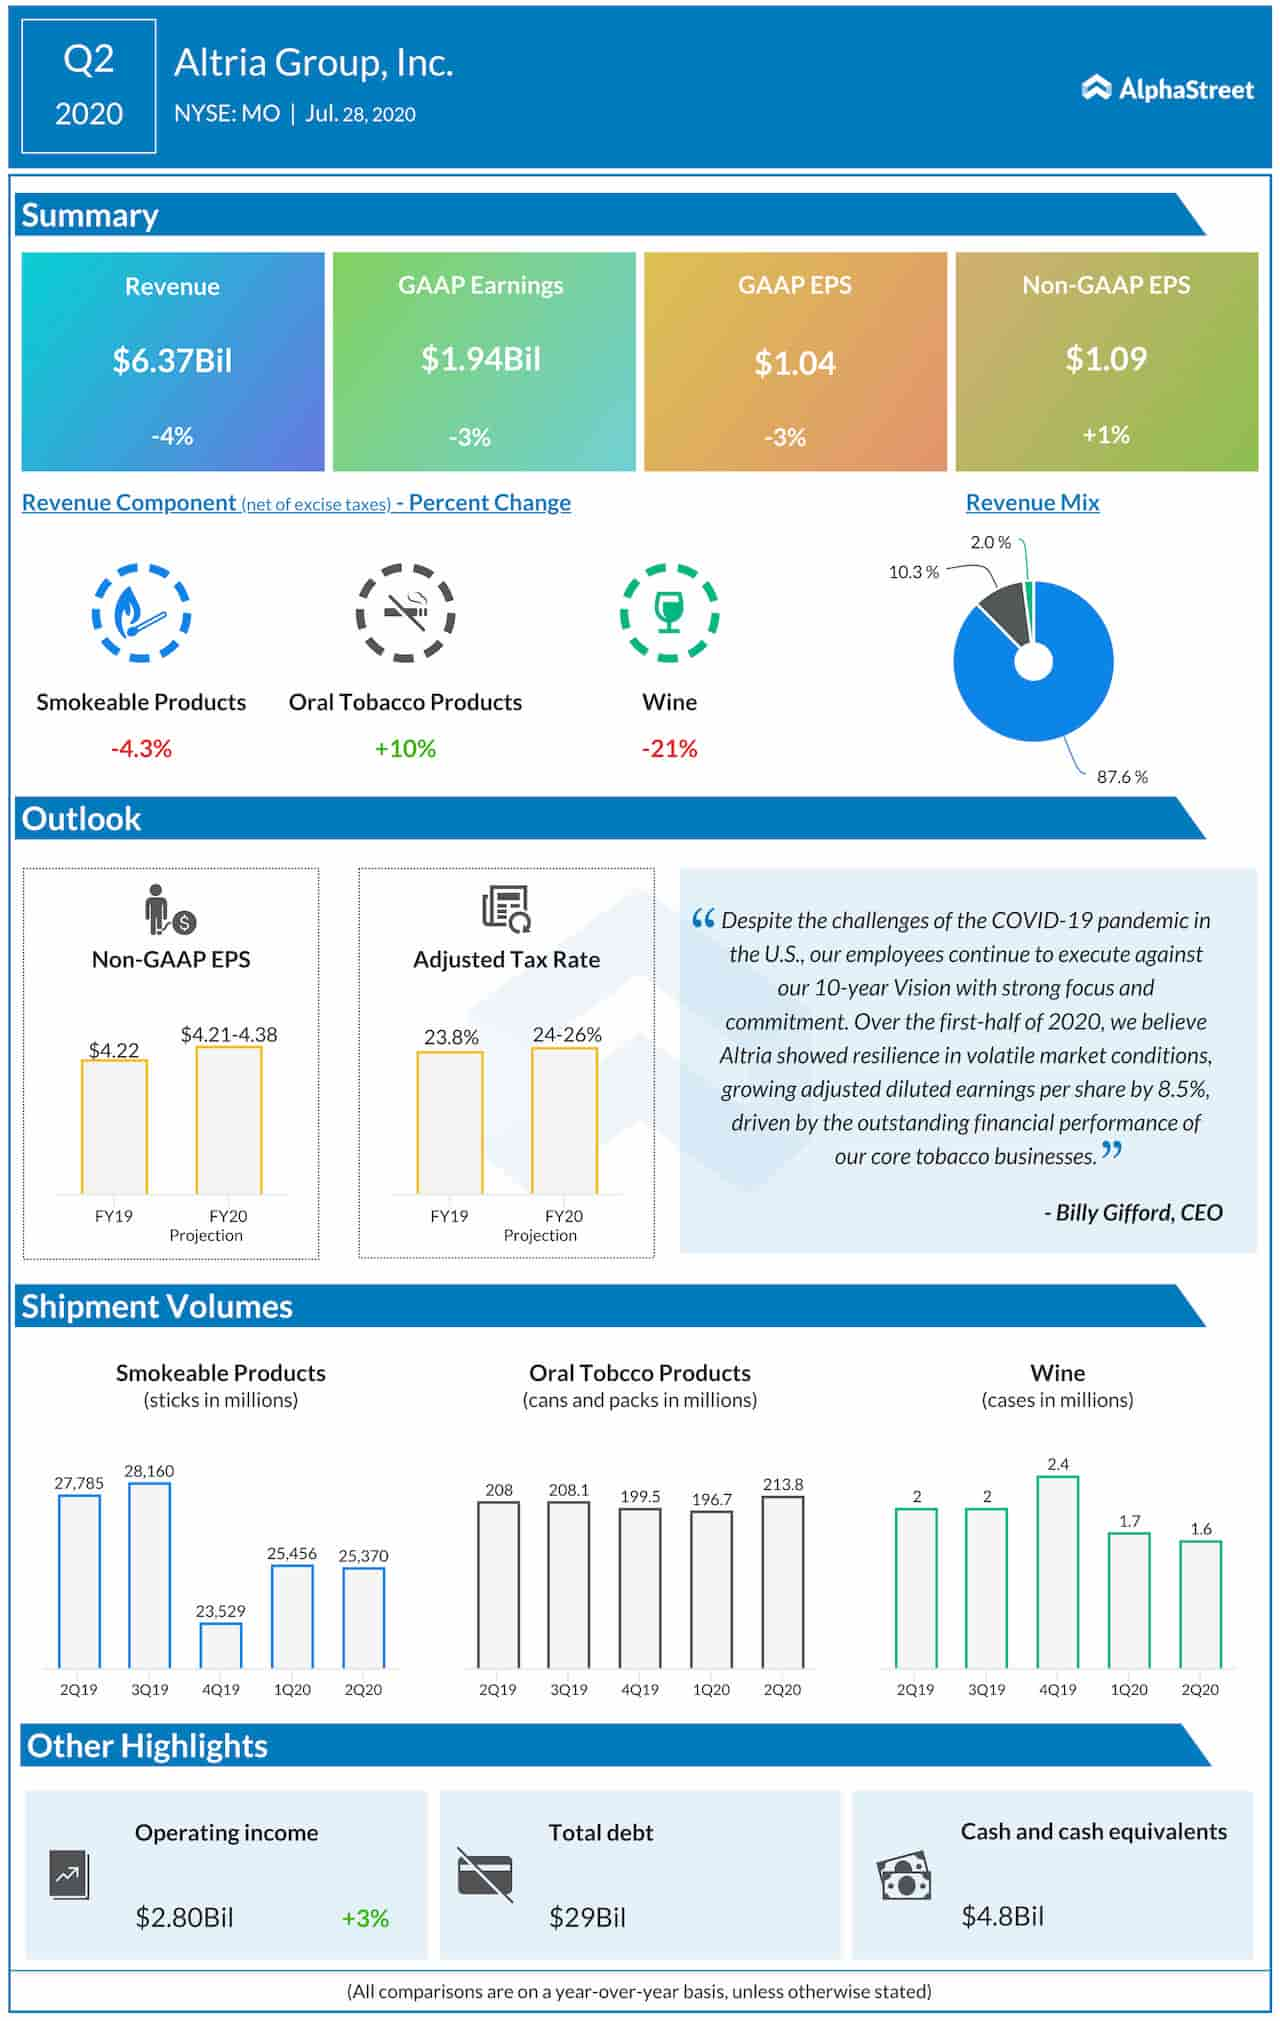 Altria Group Q2 2020 earnings infographic